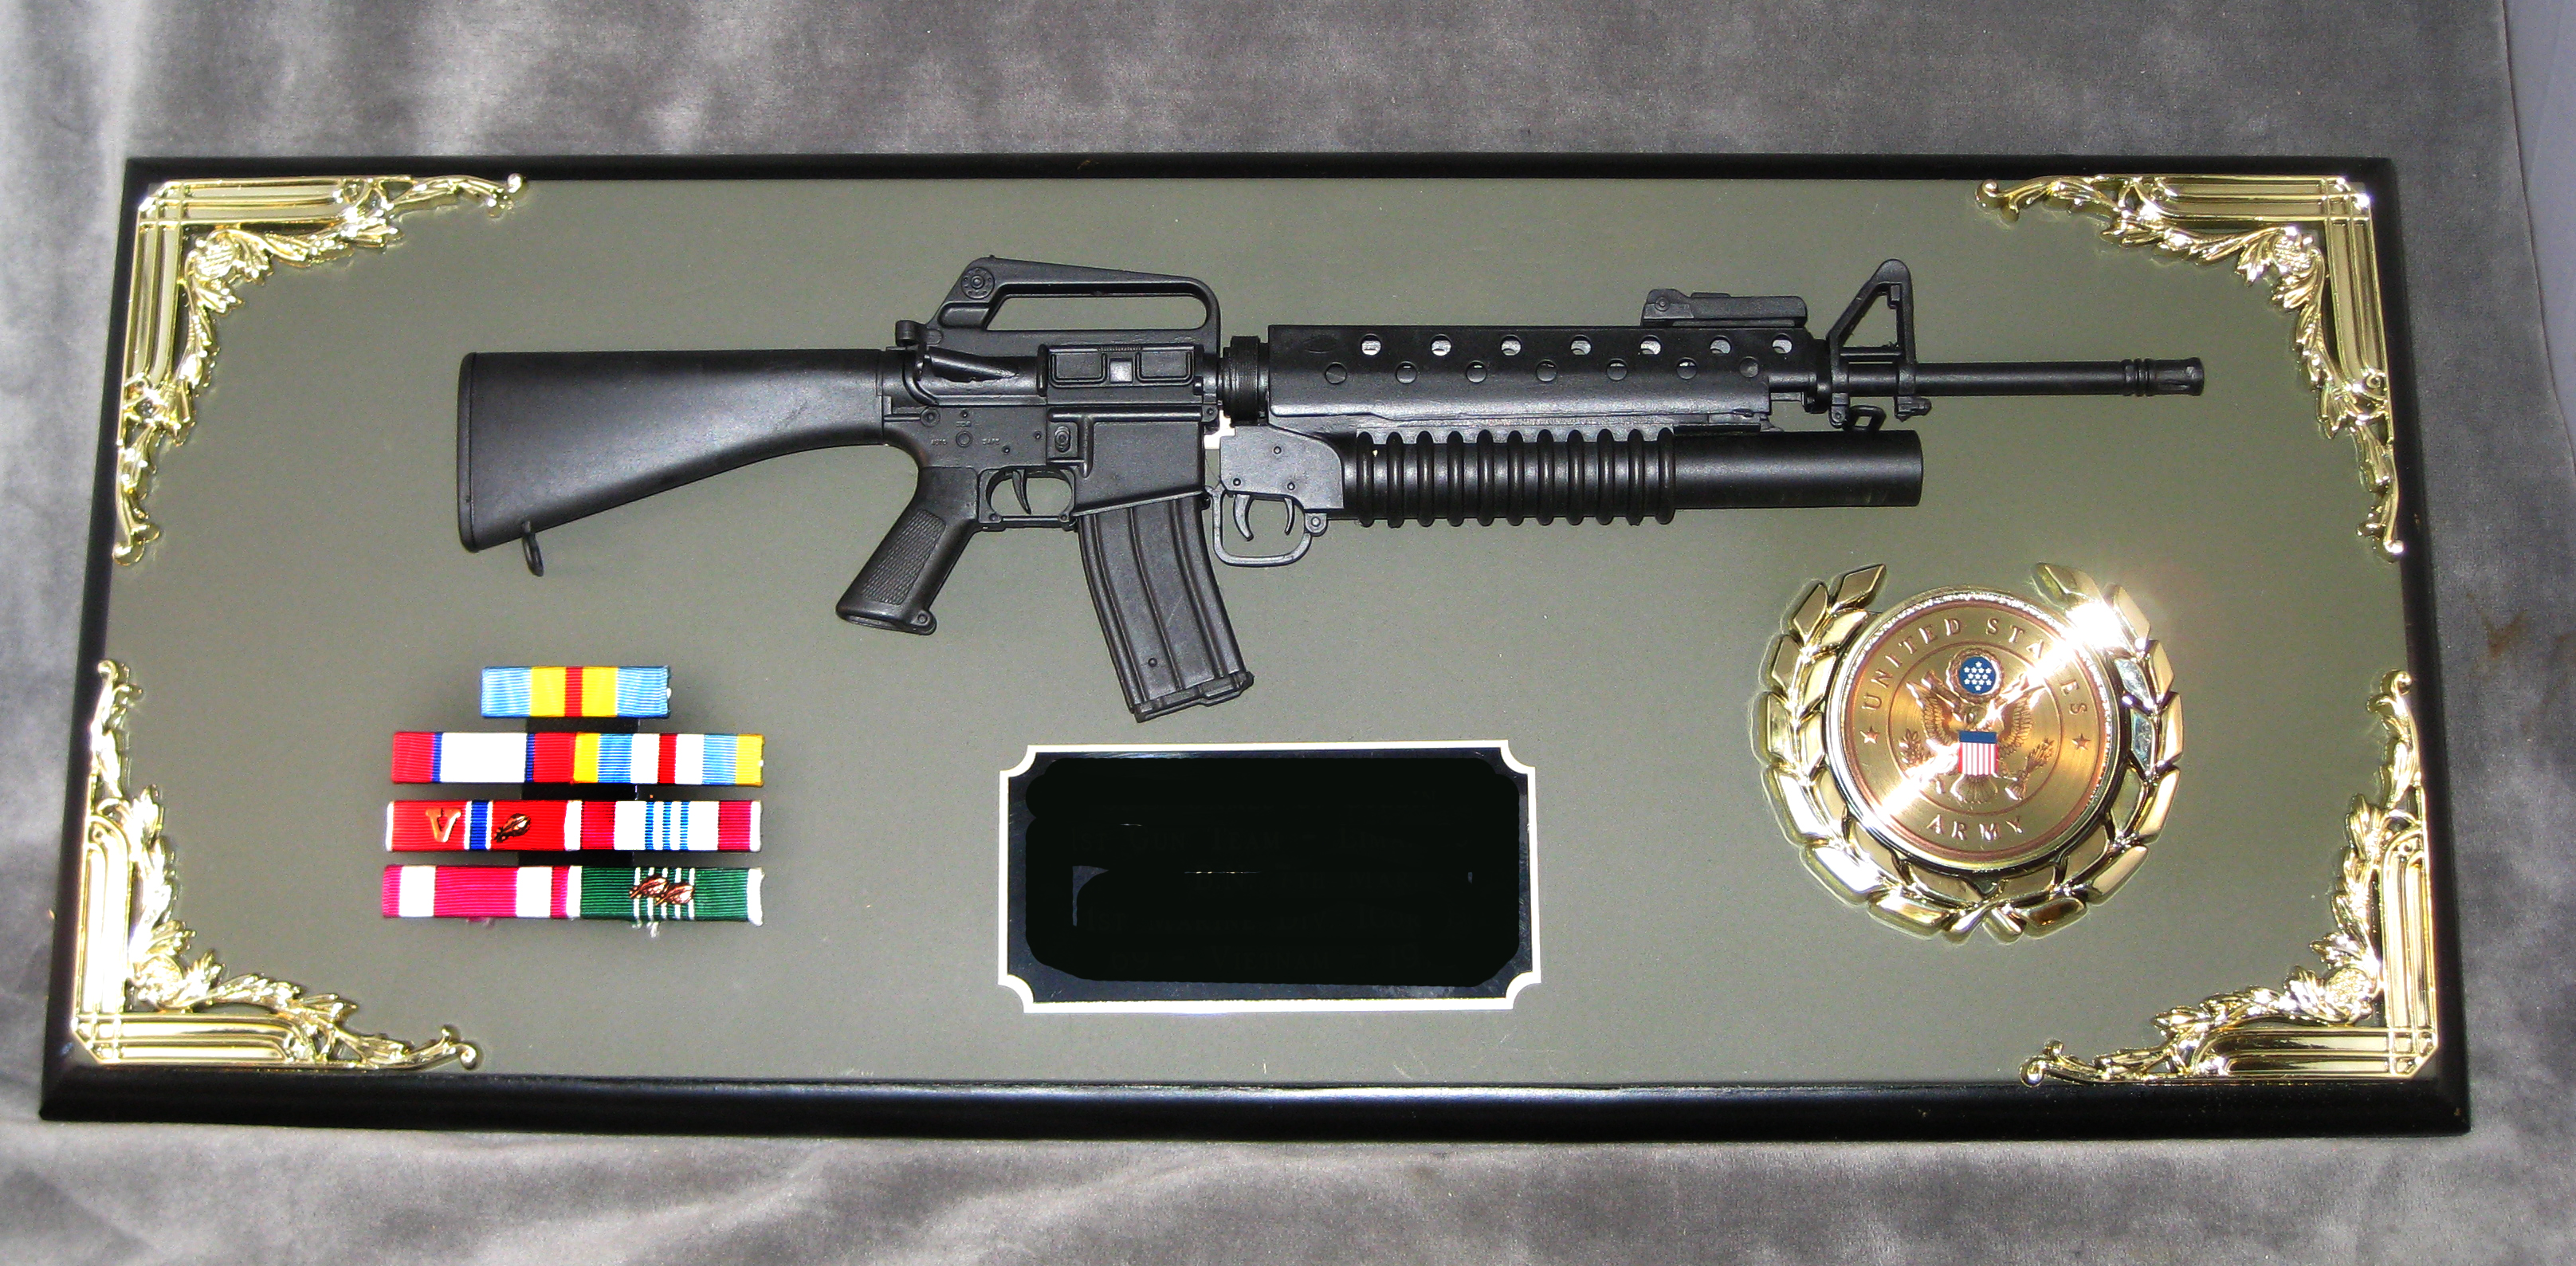 Award 1/3 scale M-16 w/M203 launcher - Click Image to Close